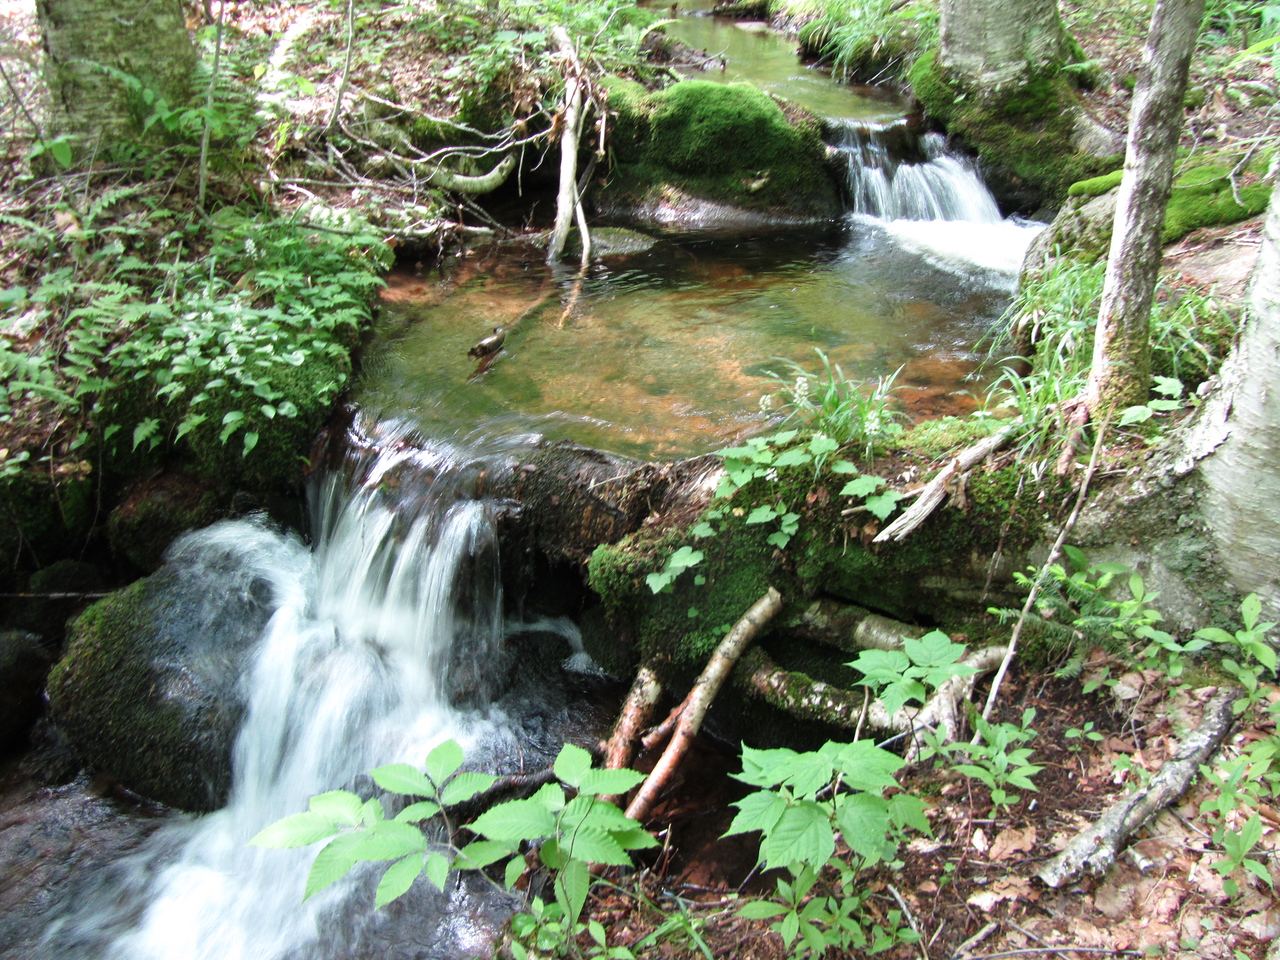 Nice waterfall. Gunter got a drink. Probably extended his beaver fever another week.